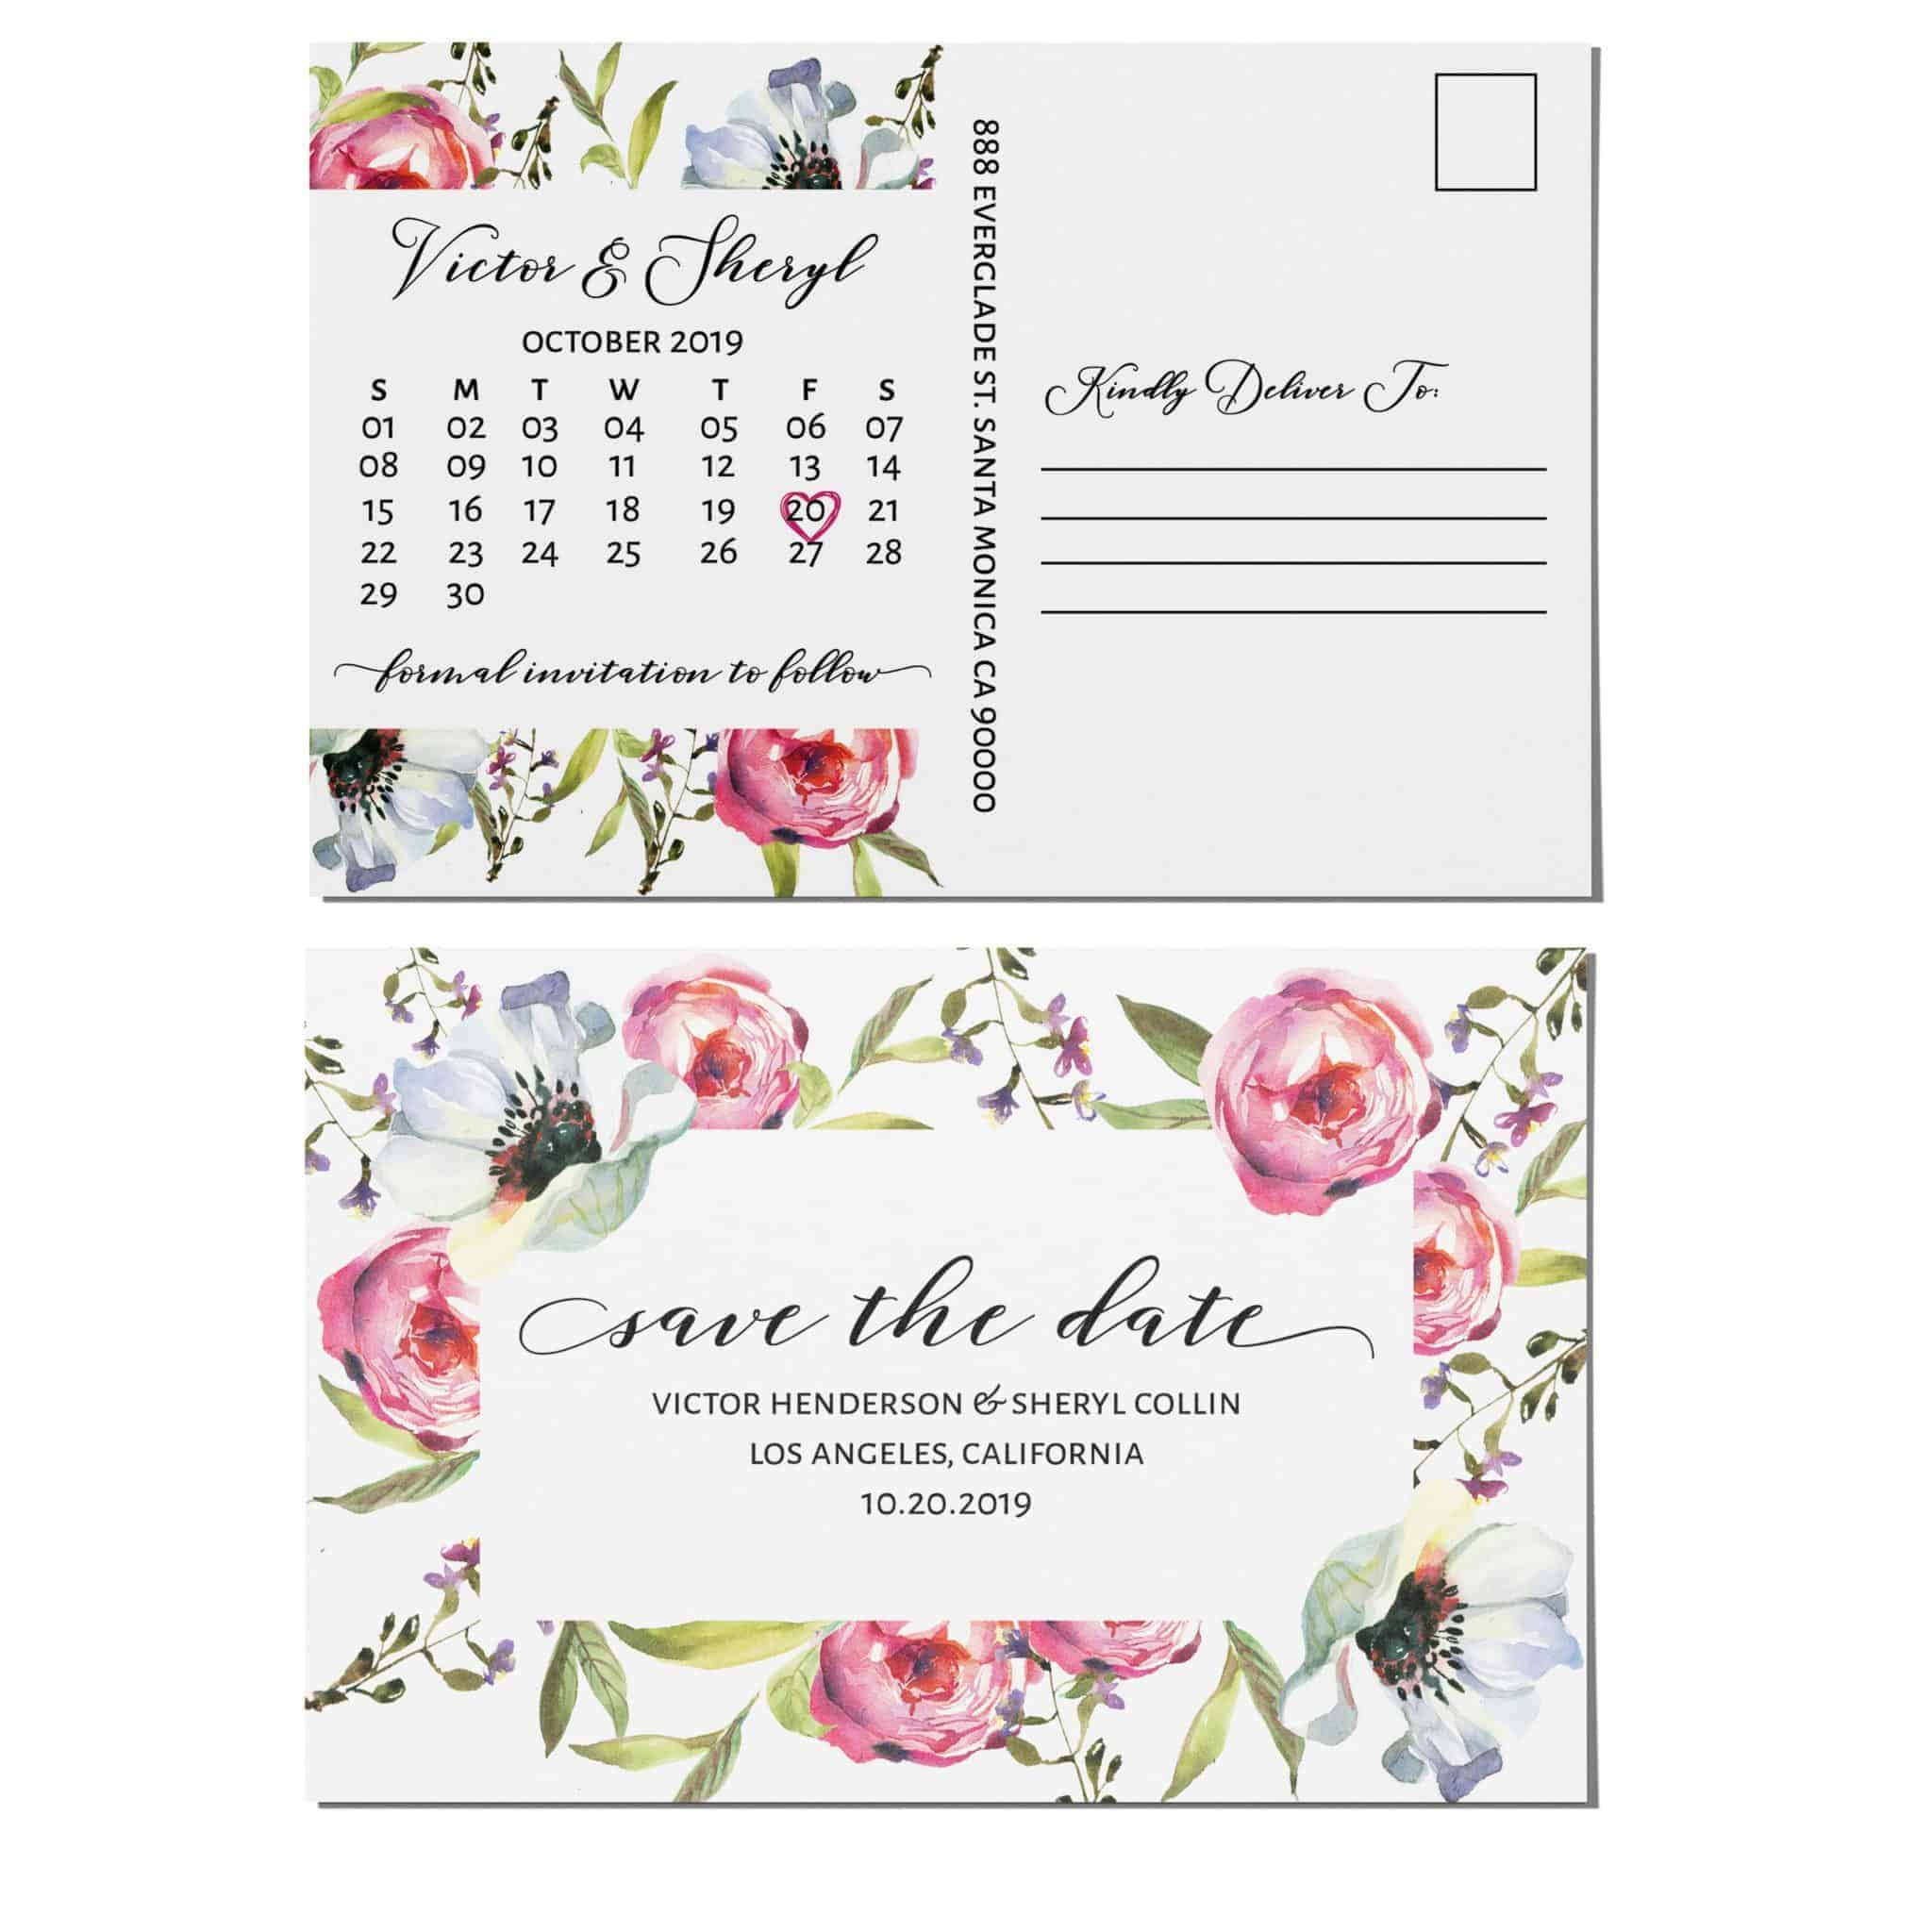 Vintage Save the Date Postcard for Weddings, Invitation Card, Wedding Announcement, Marriage Calendar- Wildflowers Theme